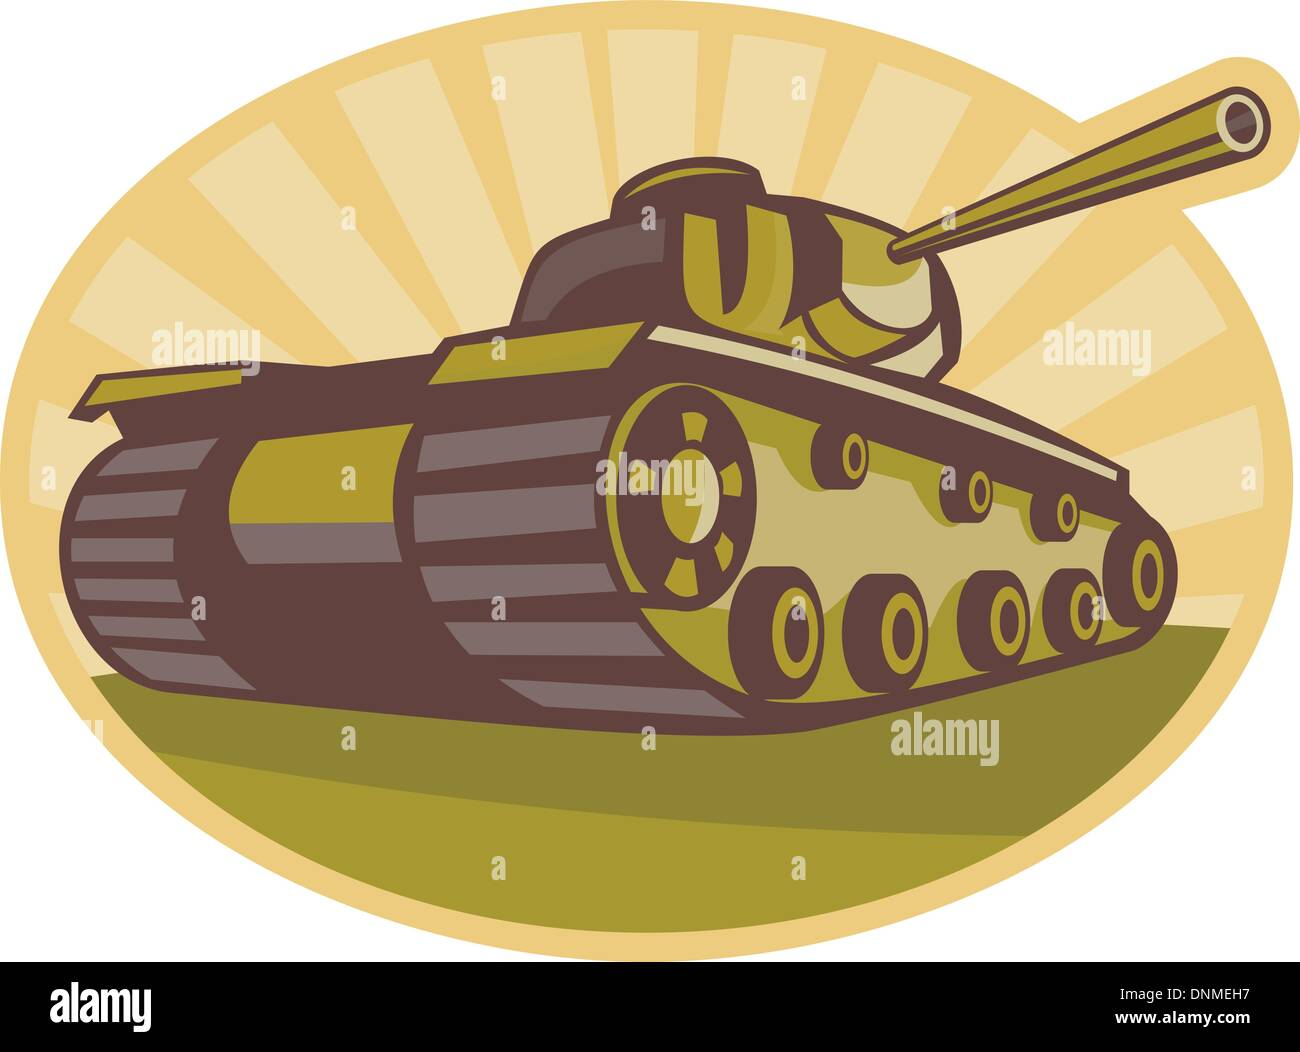 illustration of a world war two battle tank aiming cannon to side with sunburst in background done in retro style - Stock Vector